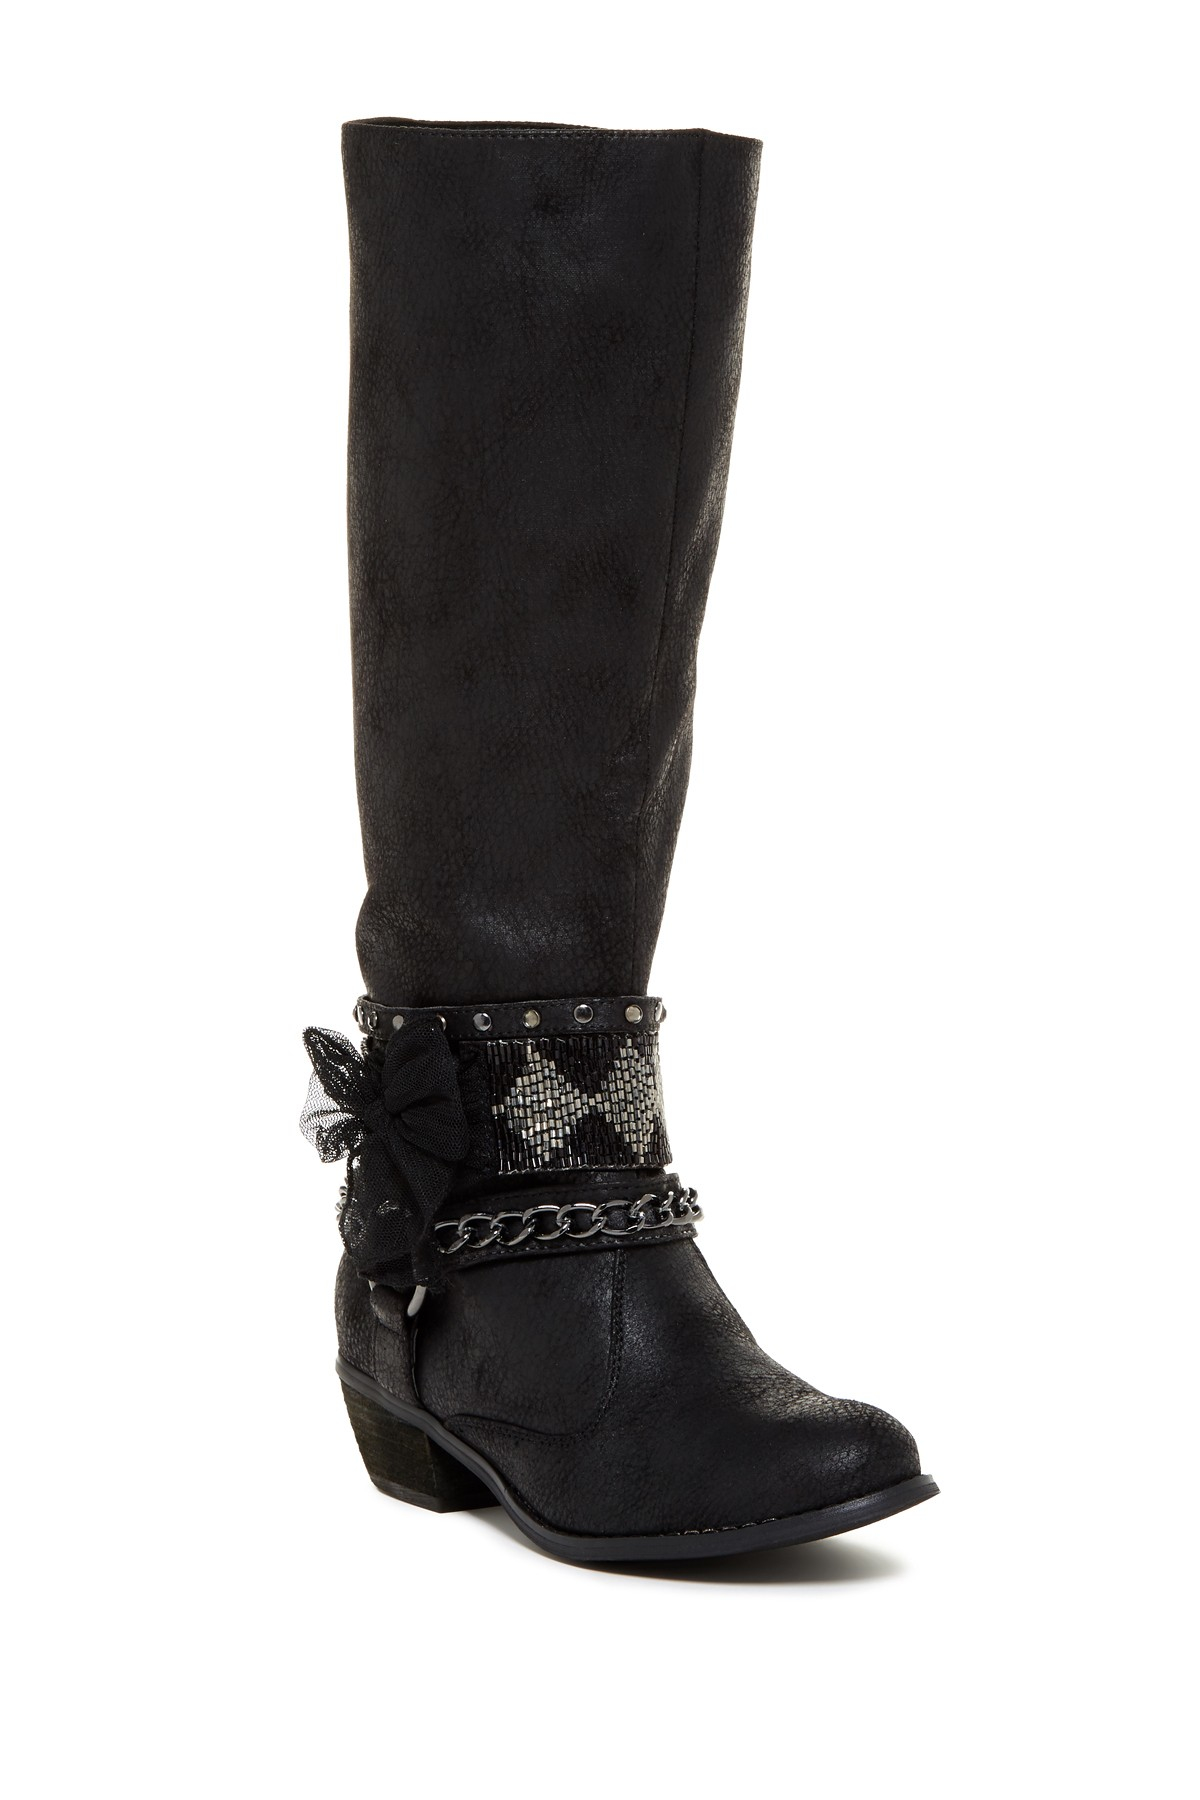 Lyst Not Rated High Status Embellished Knee High Boot In